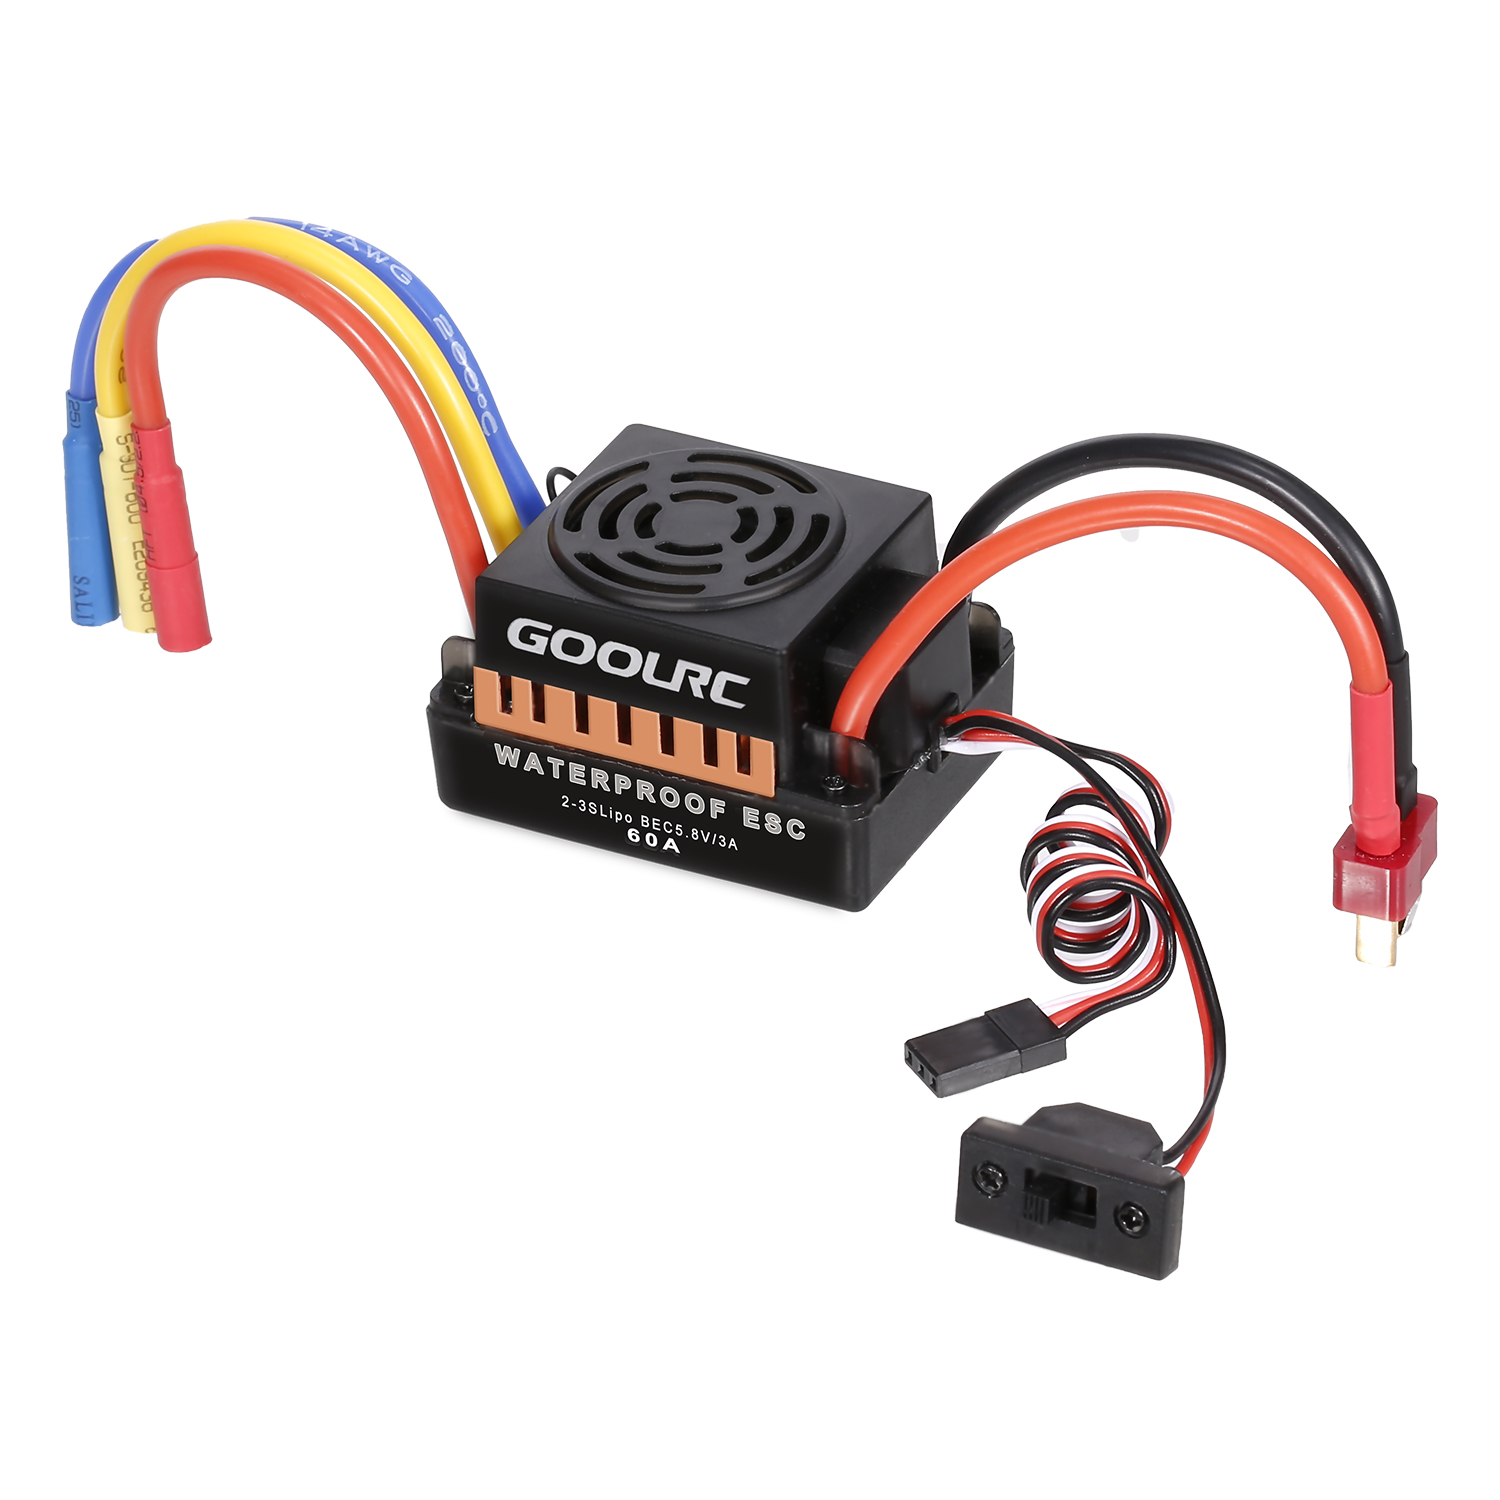 <font><b>GoolRC</b></font> 9T Motor <font><b>3650</b></font> 4370KV Brushless Motor 60A ESC Electronic Speed Controller 5.8V/3A BEC 21T Gear 28 Gear for 1/10 RC Car image